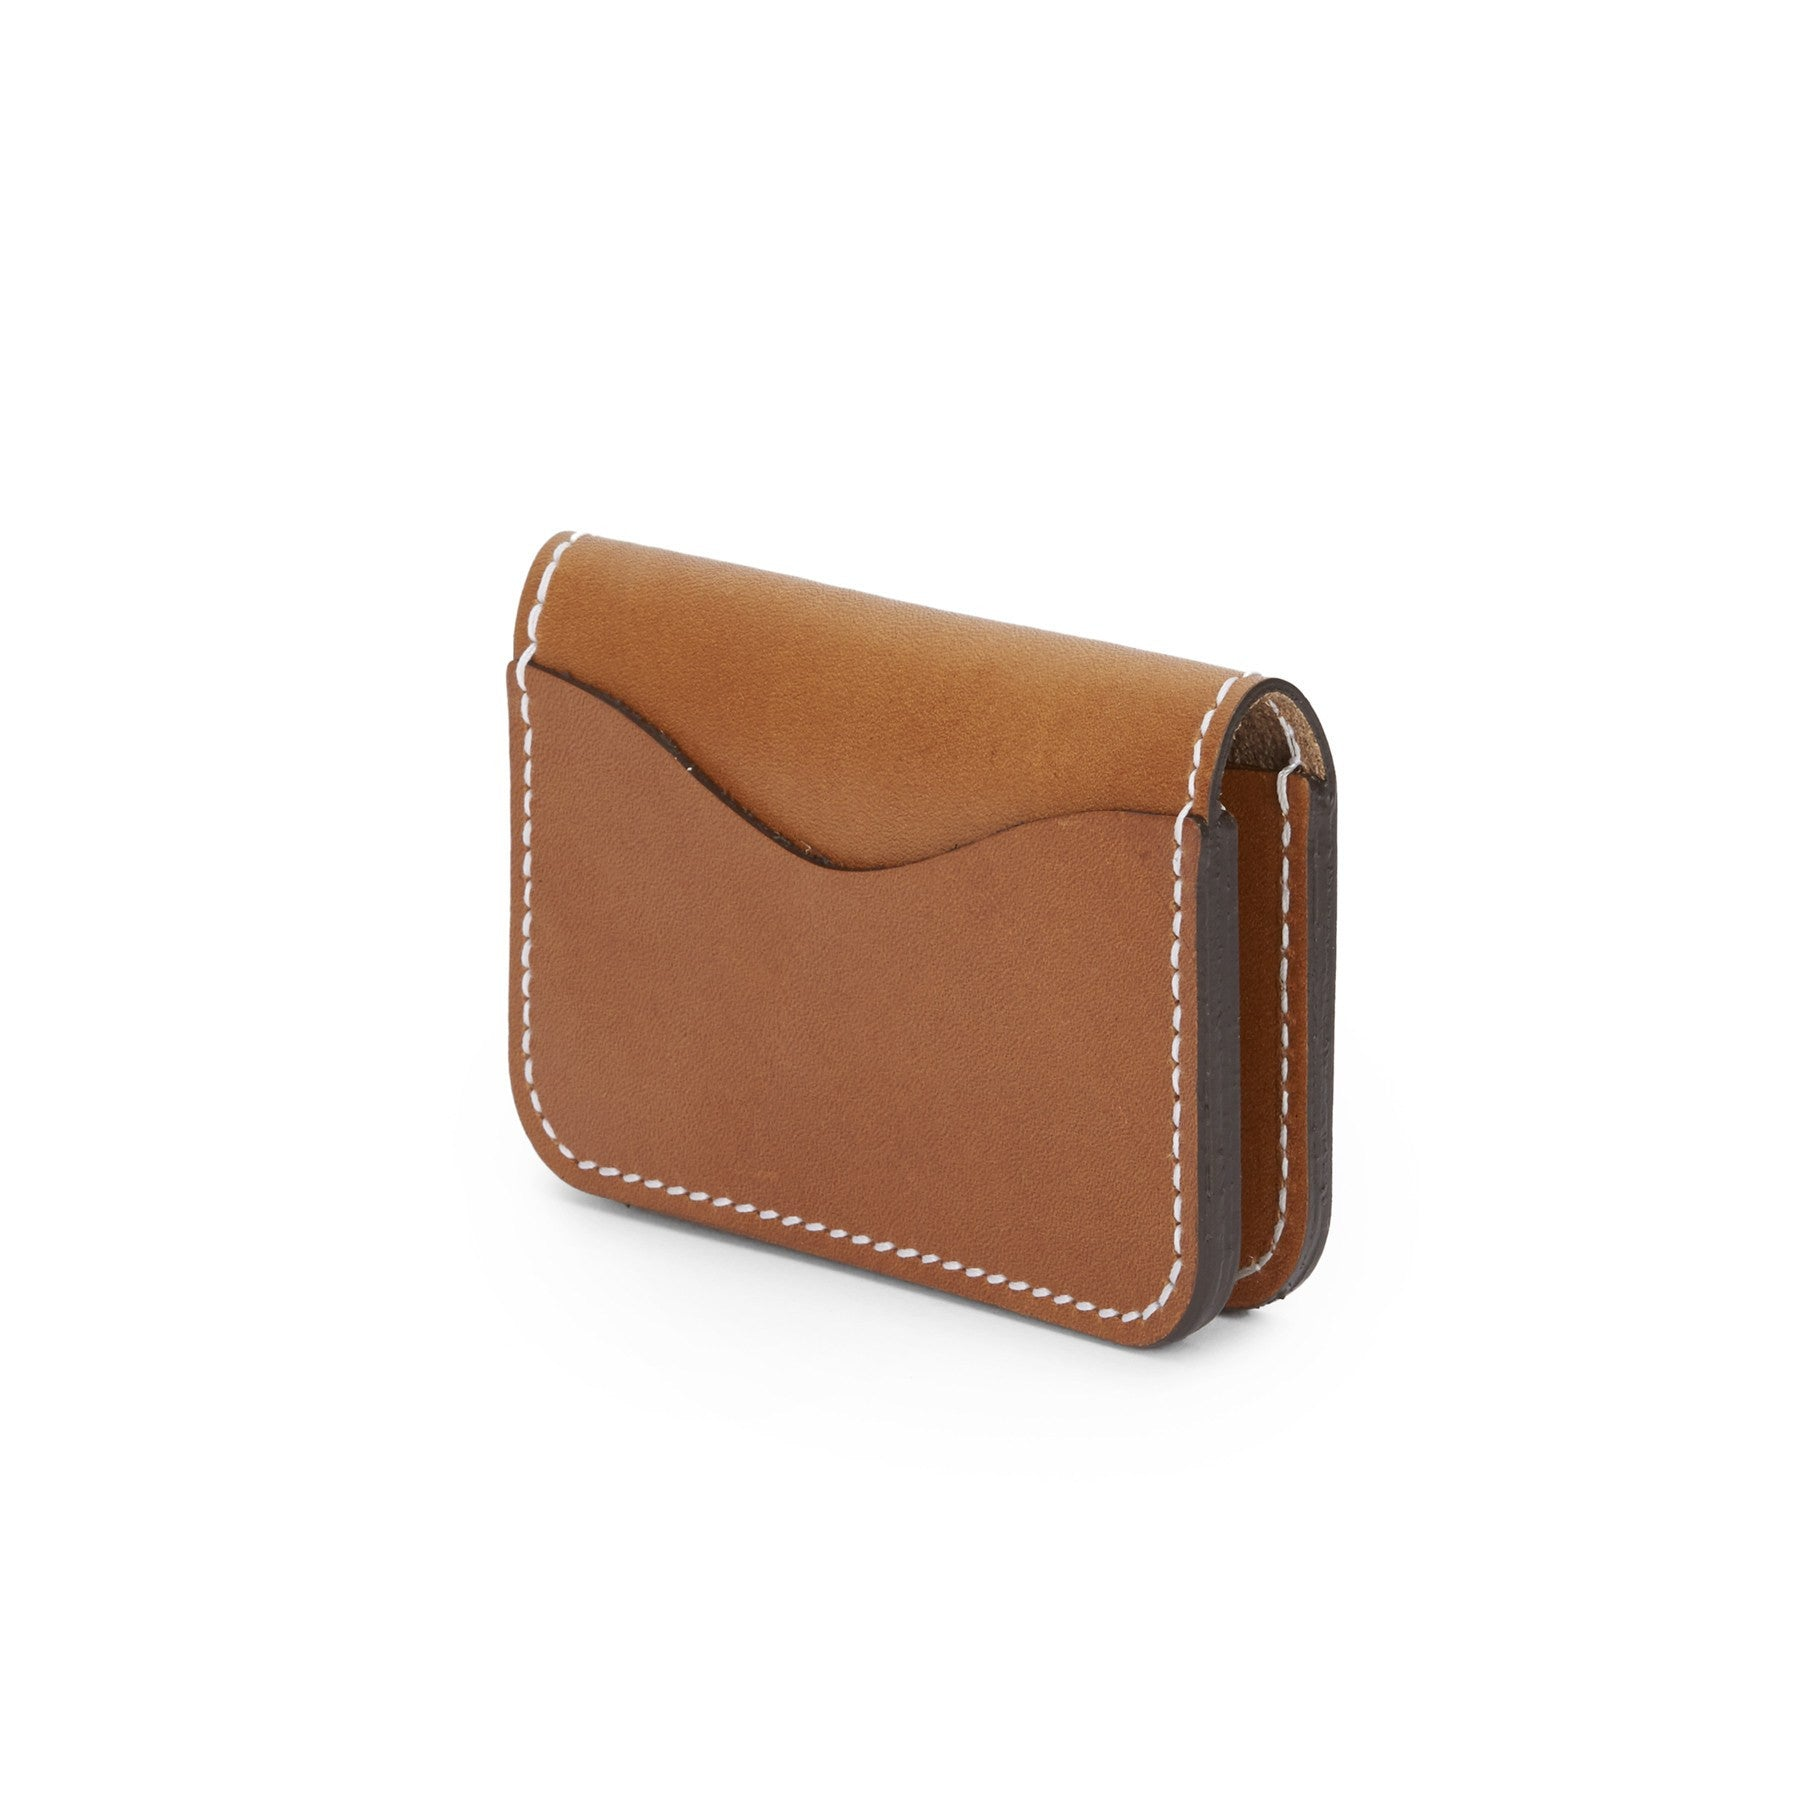 Hunker Bag Co: Horween leather wallet